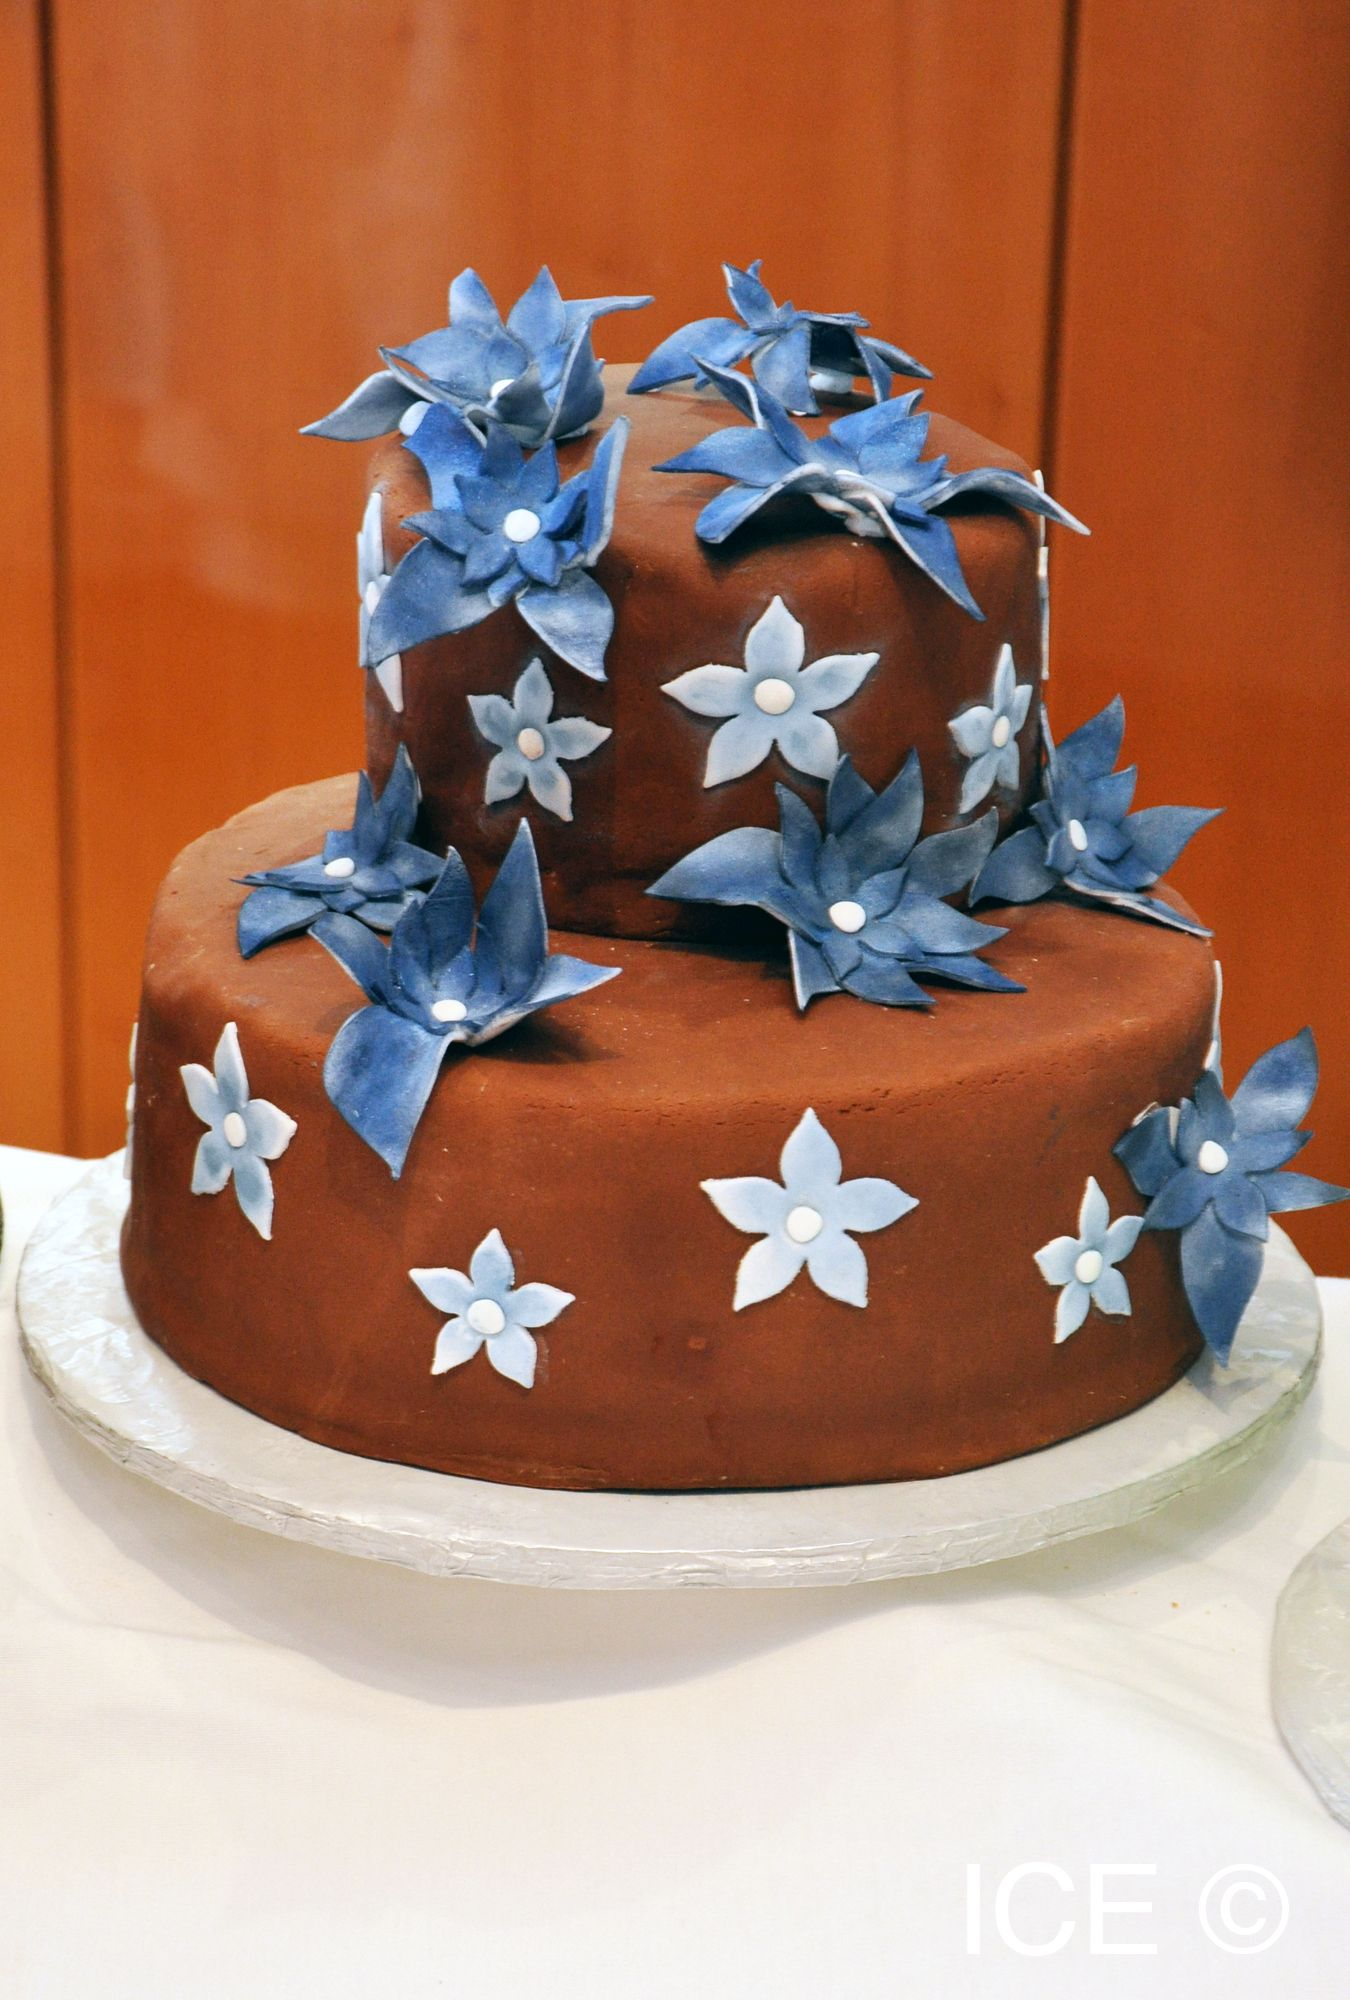 A brown and blue cake professional cake decorating